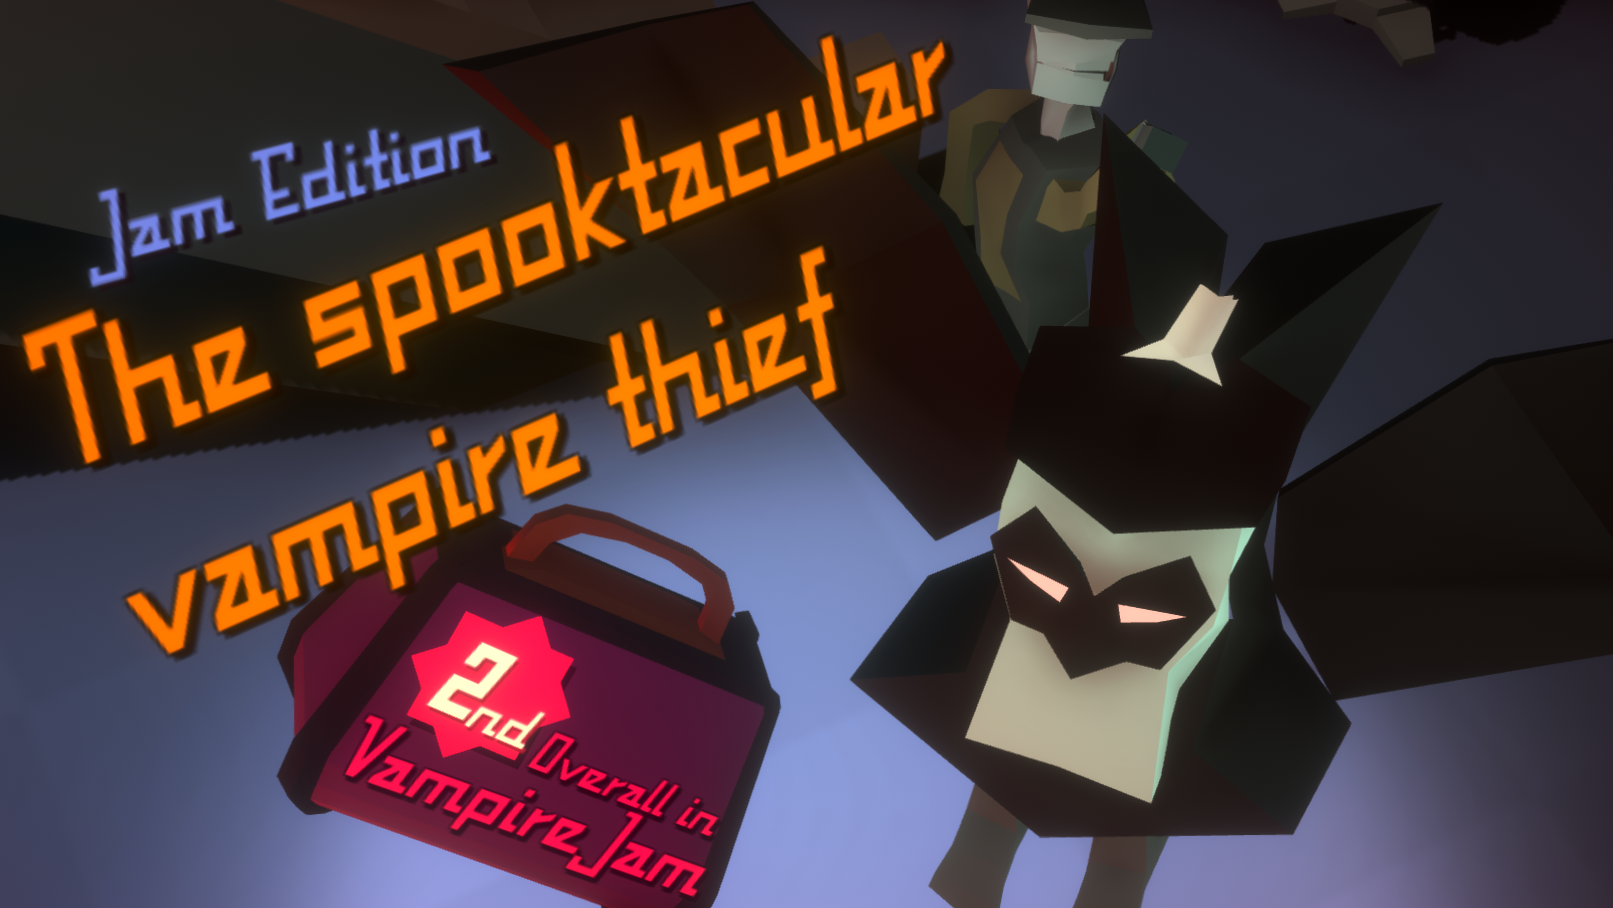 The Spooktacular Vampire Thief